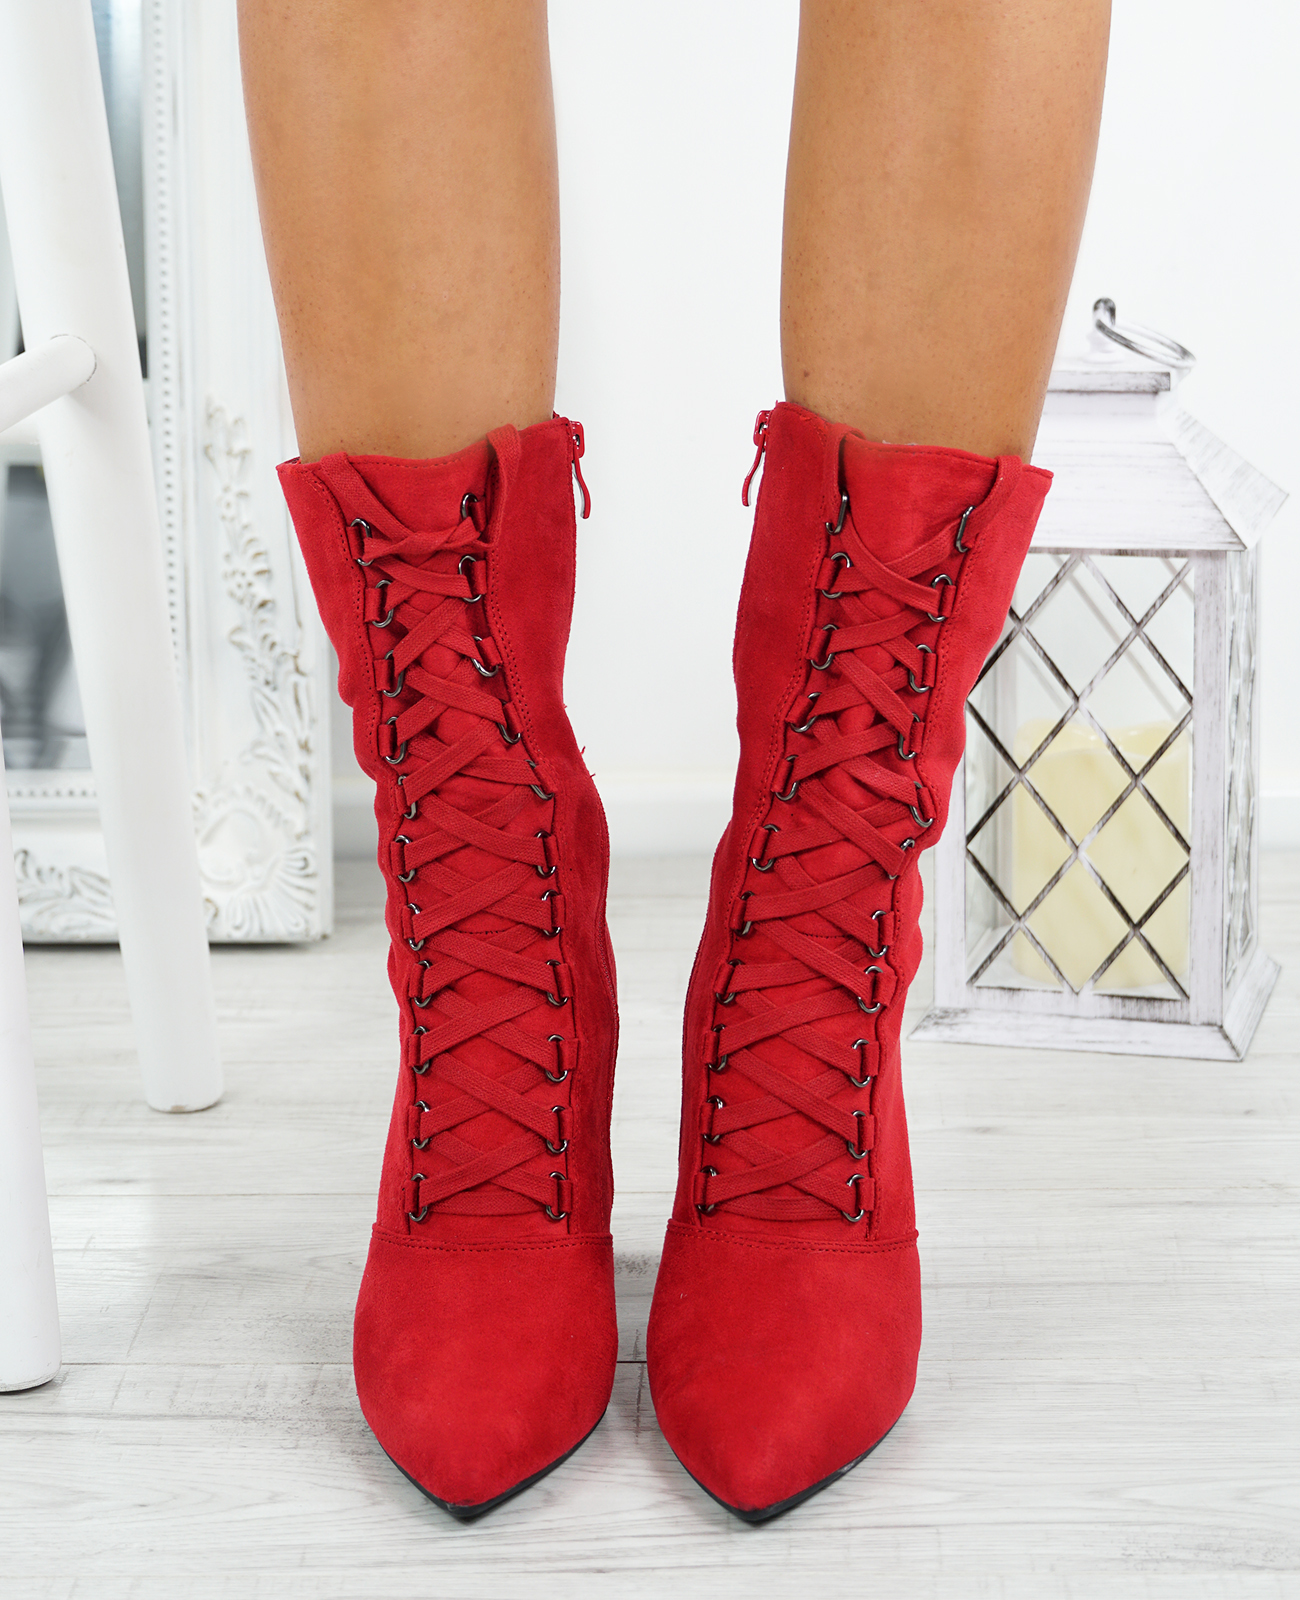 LADIES-WOMENS-HIGH-TOP-ANKLE-BOOTS-SIDE-ZIP-LACE-BLOCK-HEEL-POINTED-TOE-SHOES thumbnail 18